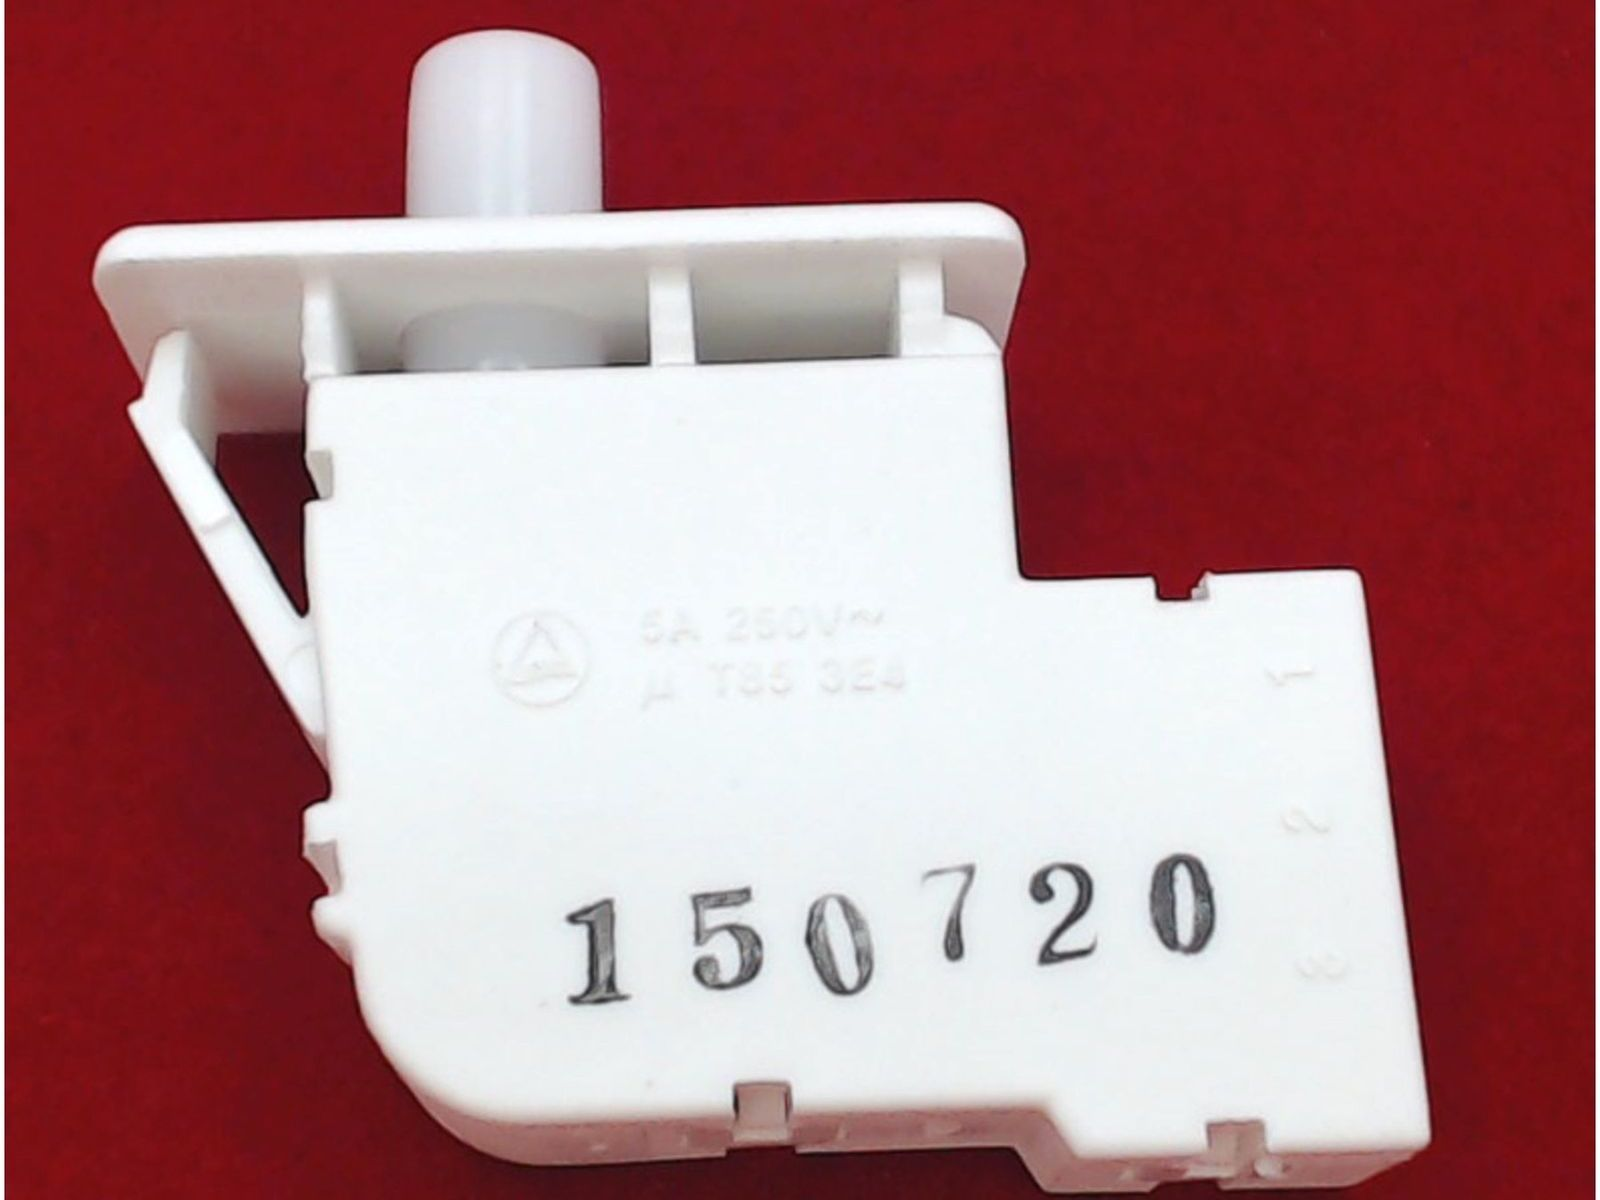 SRT Appliance Parts DC64-00828A, Clothes Dryer Door Switch for Samsung